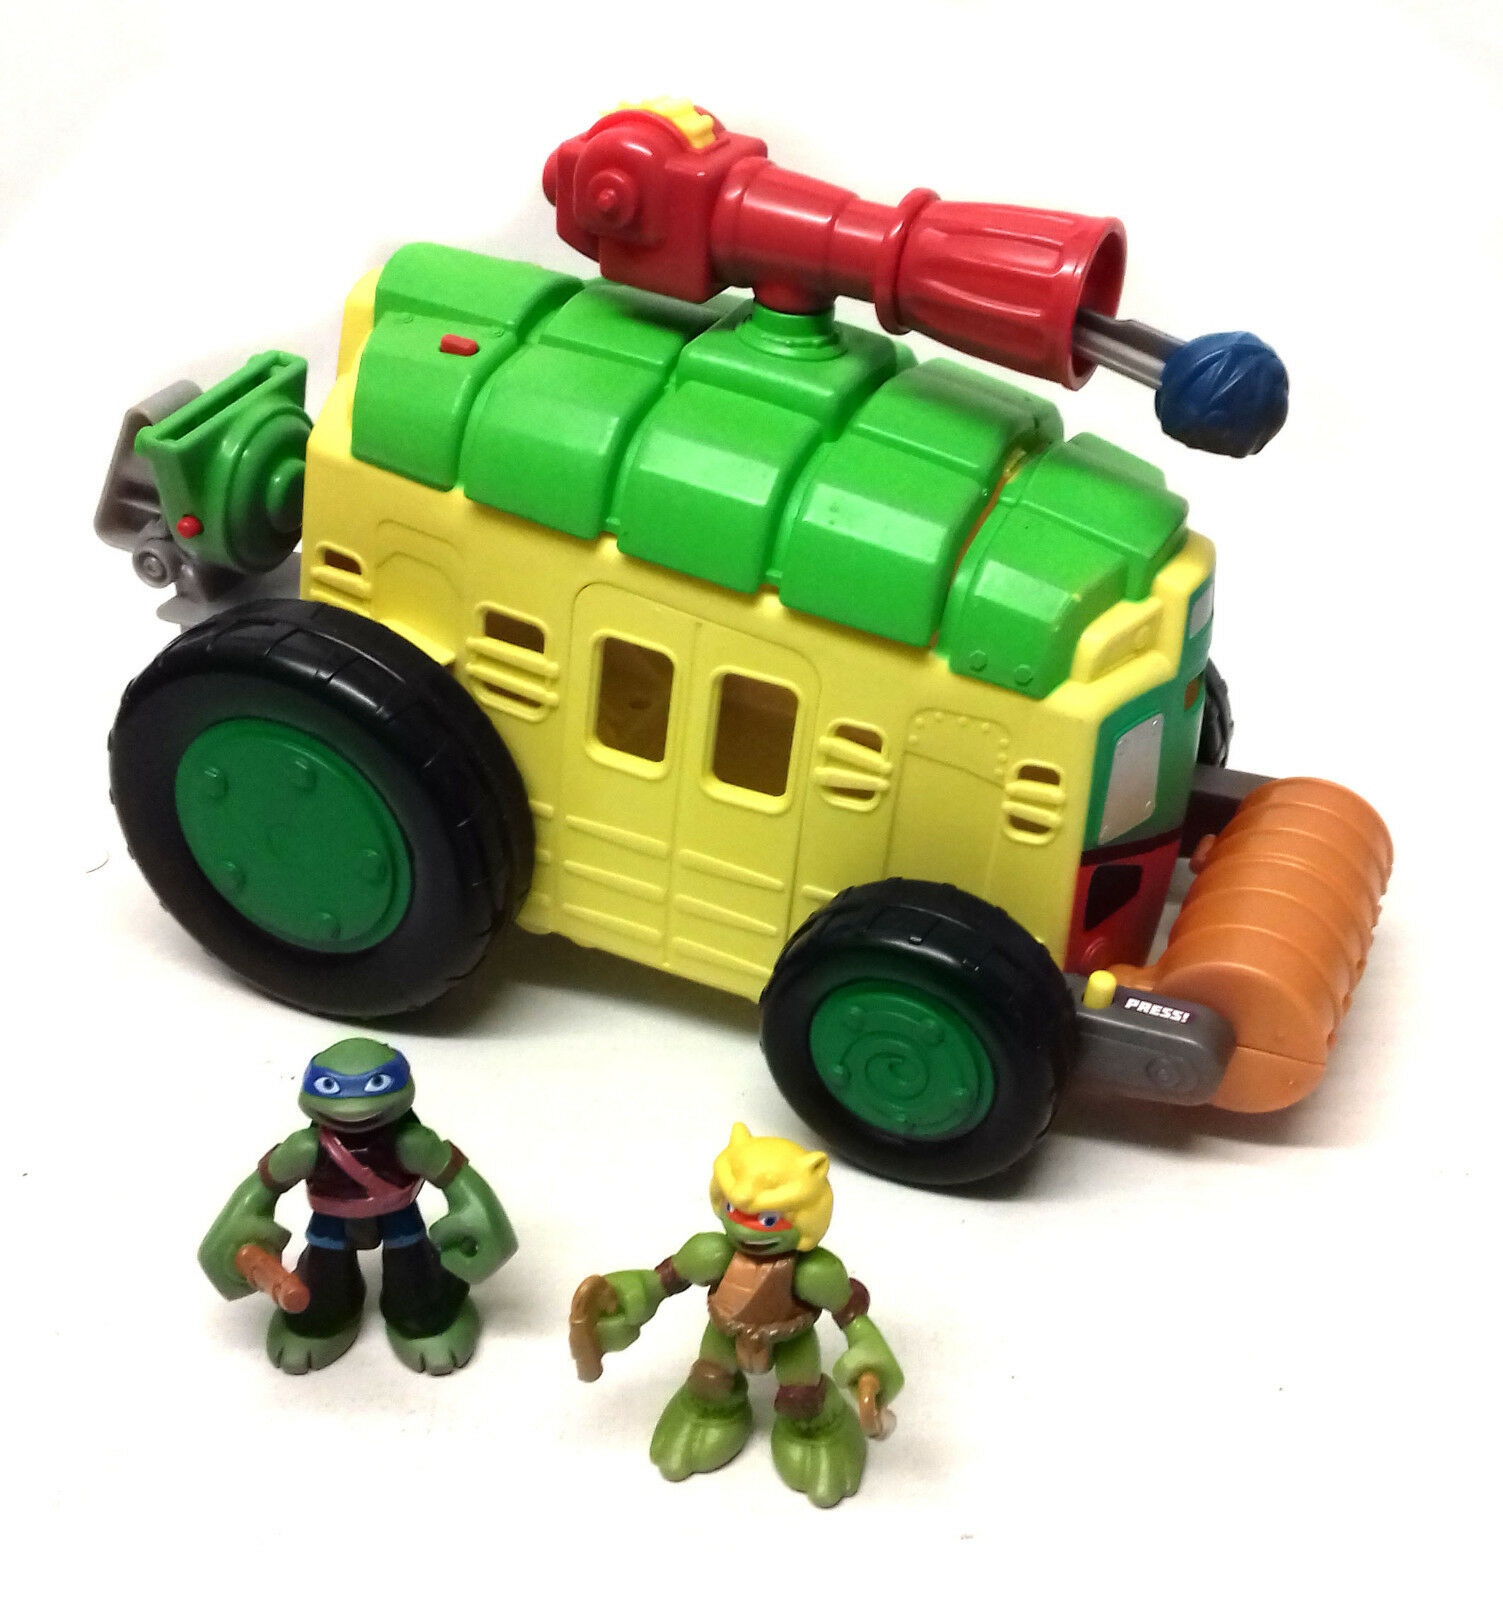 TMNT Turtles Half Shell Heroes Shell Raiser Vehicle Vehicle Vehicle Playset with Figure set 982fd6